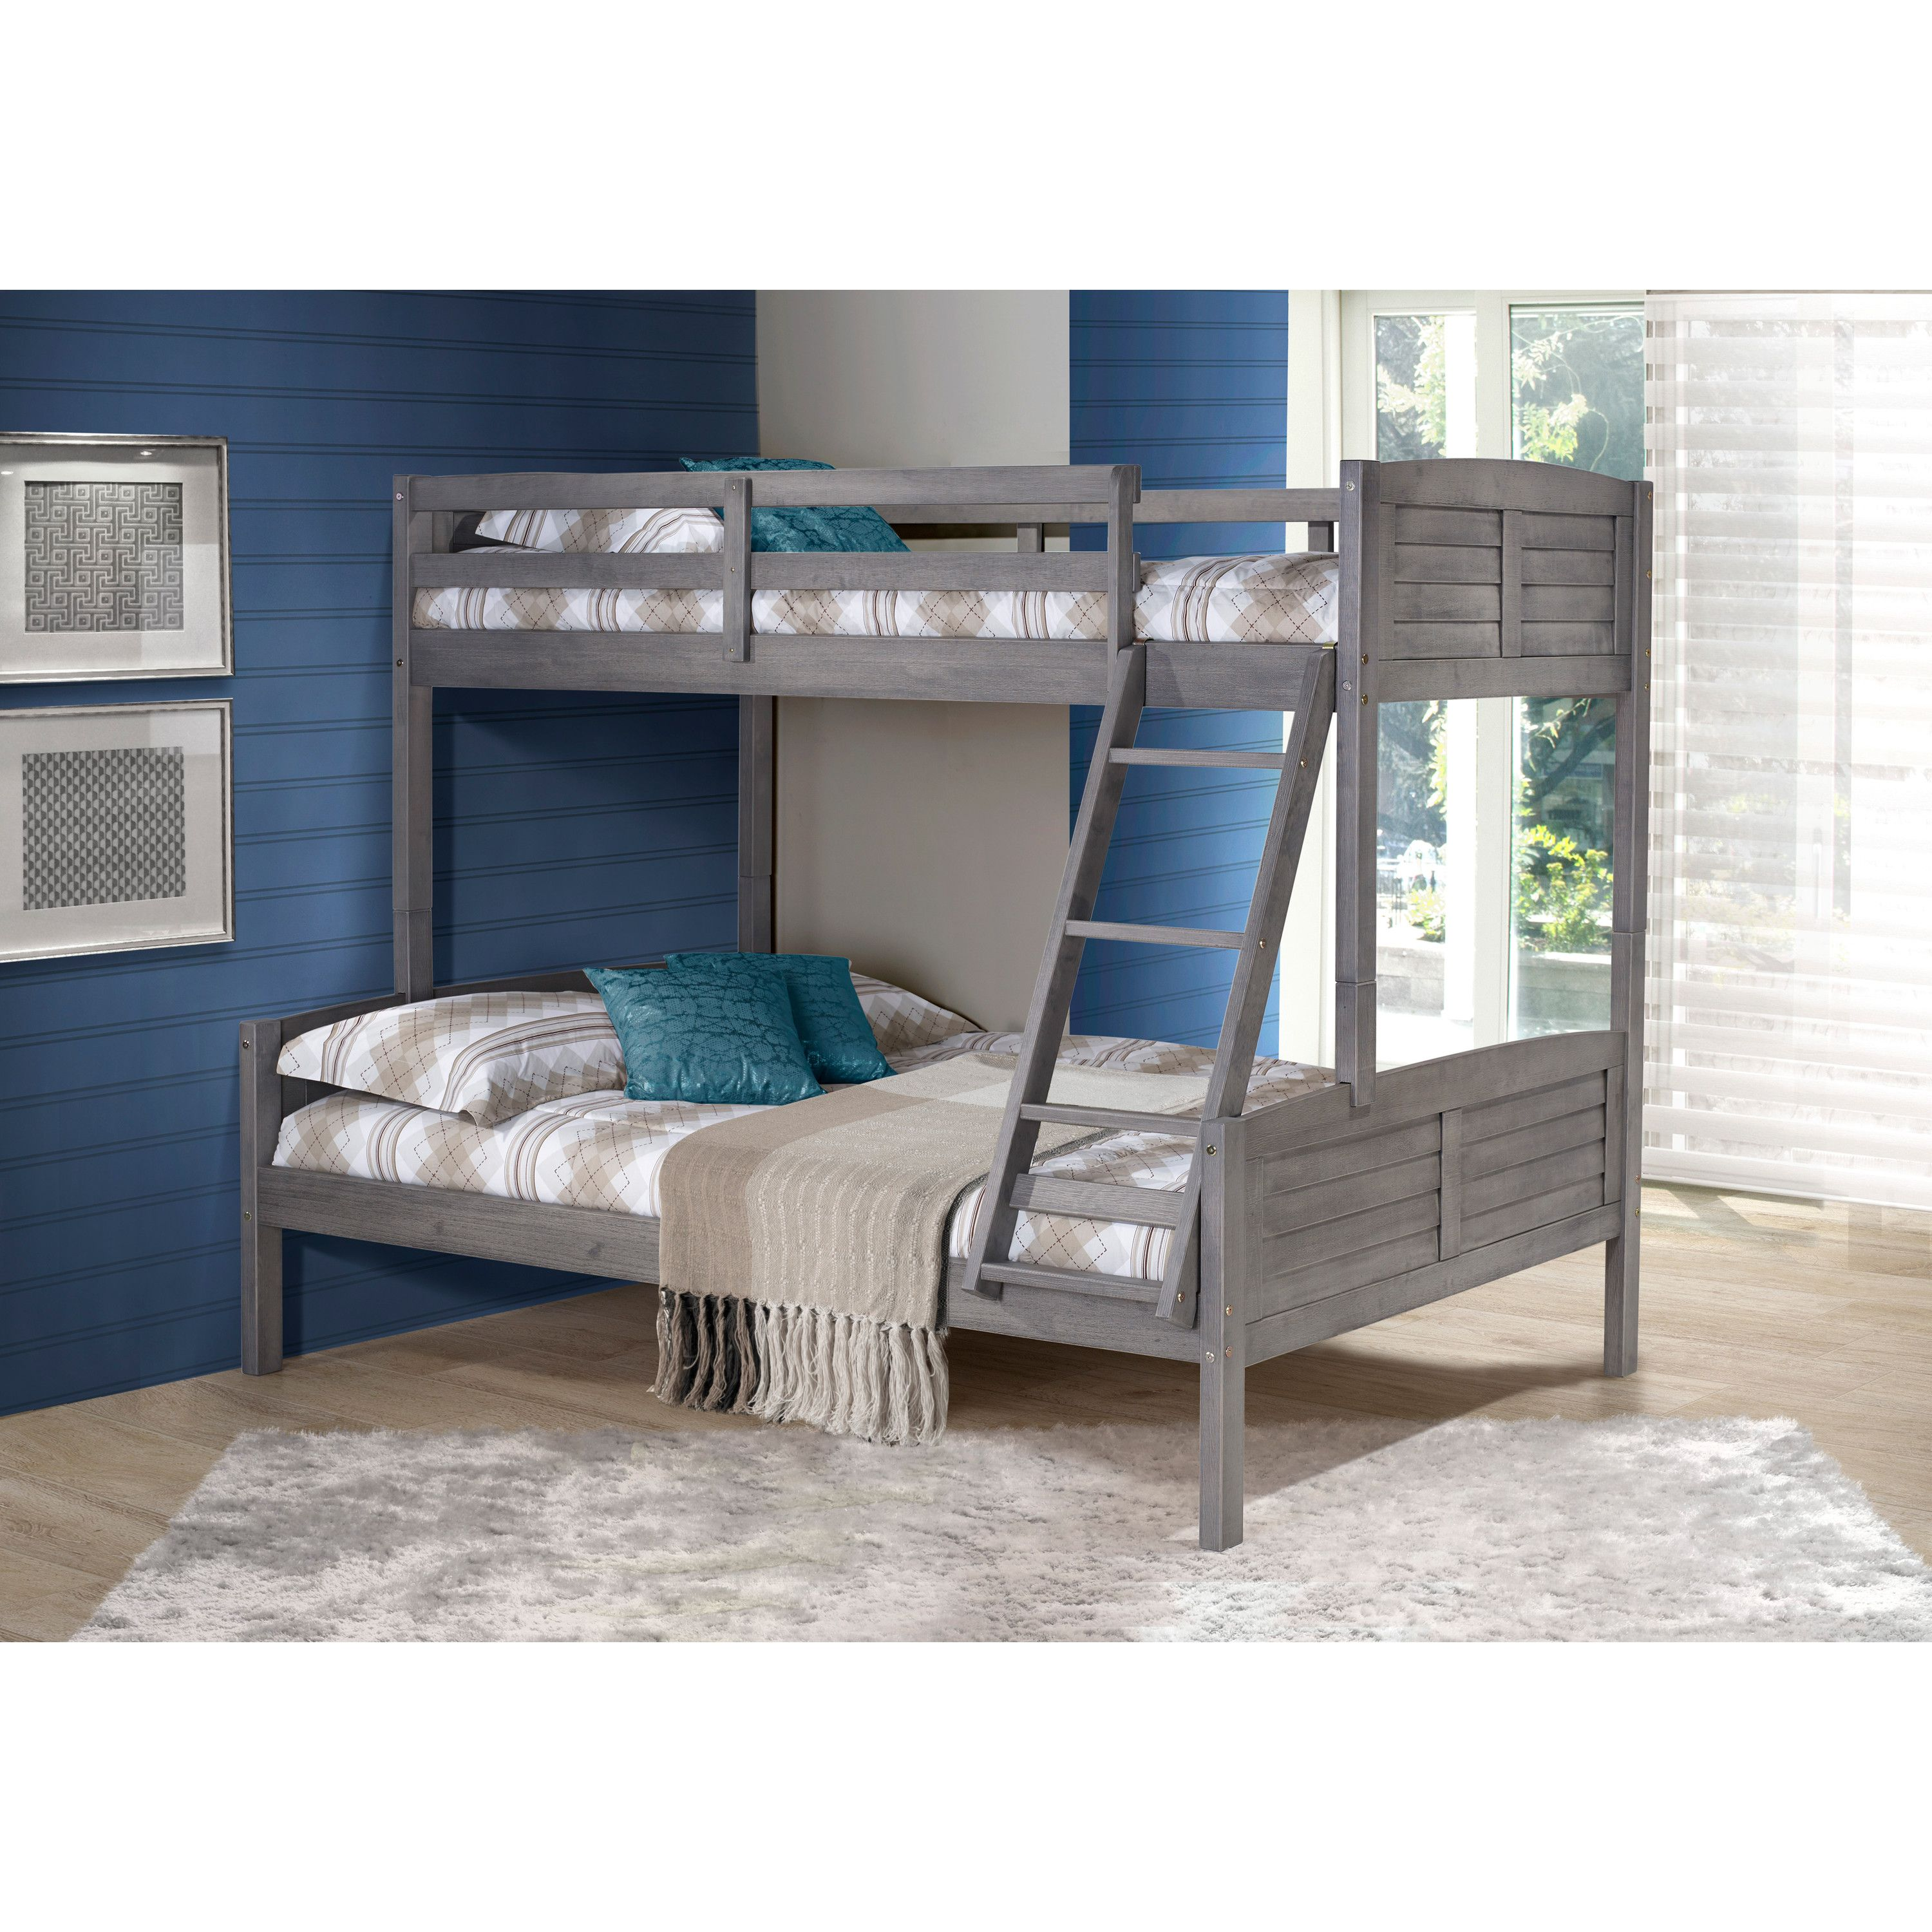 Metal loft bed with desk underneath  Donco Kids Tree House Twin Over Full Bunk Bed  Mi Casa  Pinterest